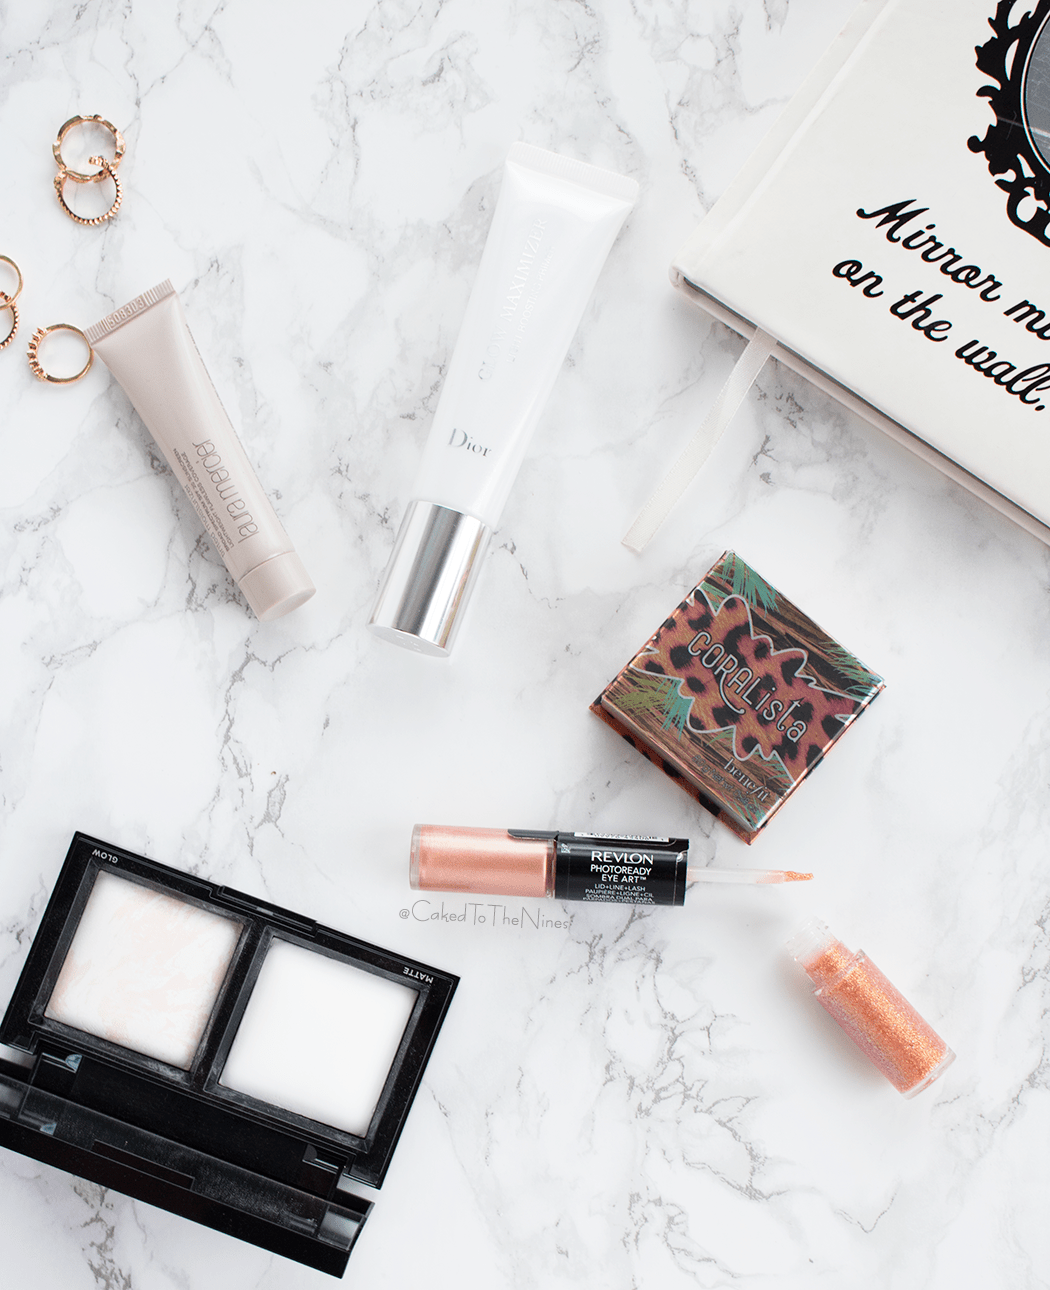 May Beauty Loves featuring Dior Glow Maximizer, Bare Minerals Translucent Powder Duo, Benefit Coralita, Revlon PhotoReady Eye Art, Laura Mercier Tinted Moisturizer